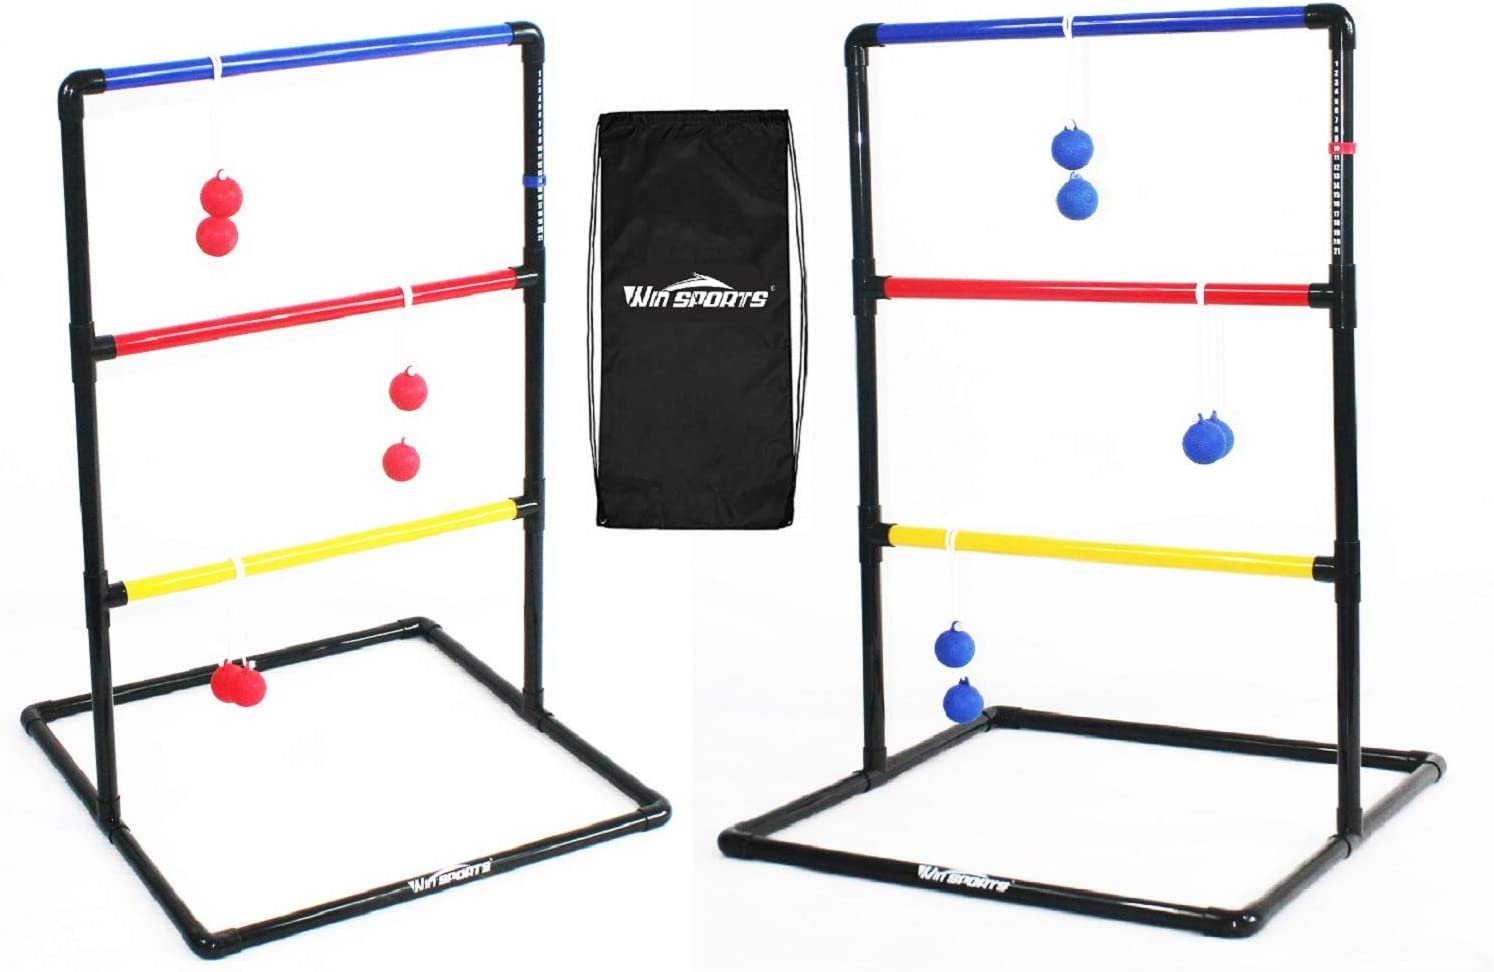 Win SPORTS Indoor/Outdoor Ladder Toss Game Set - Ladder Ball Toss Game with 6 Weighted Bolos, Carrying Case and Sand Weighted PVC Piping - Games for Adults, Kids, Family